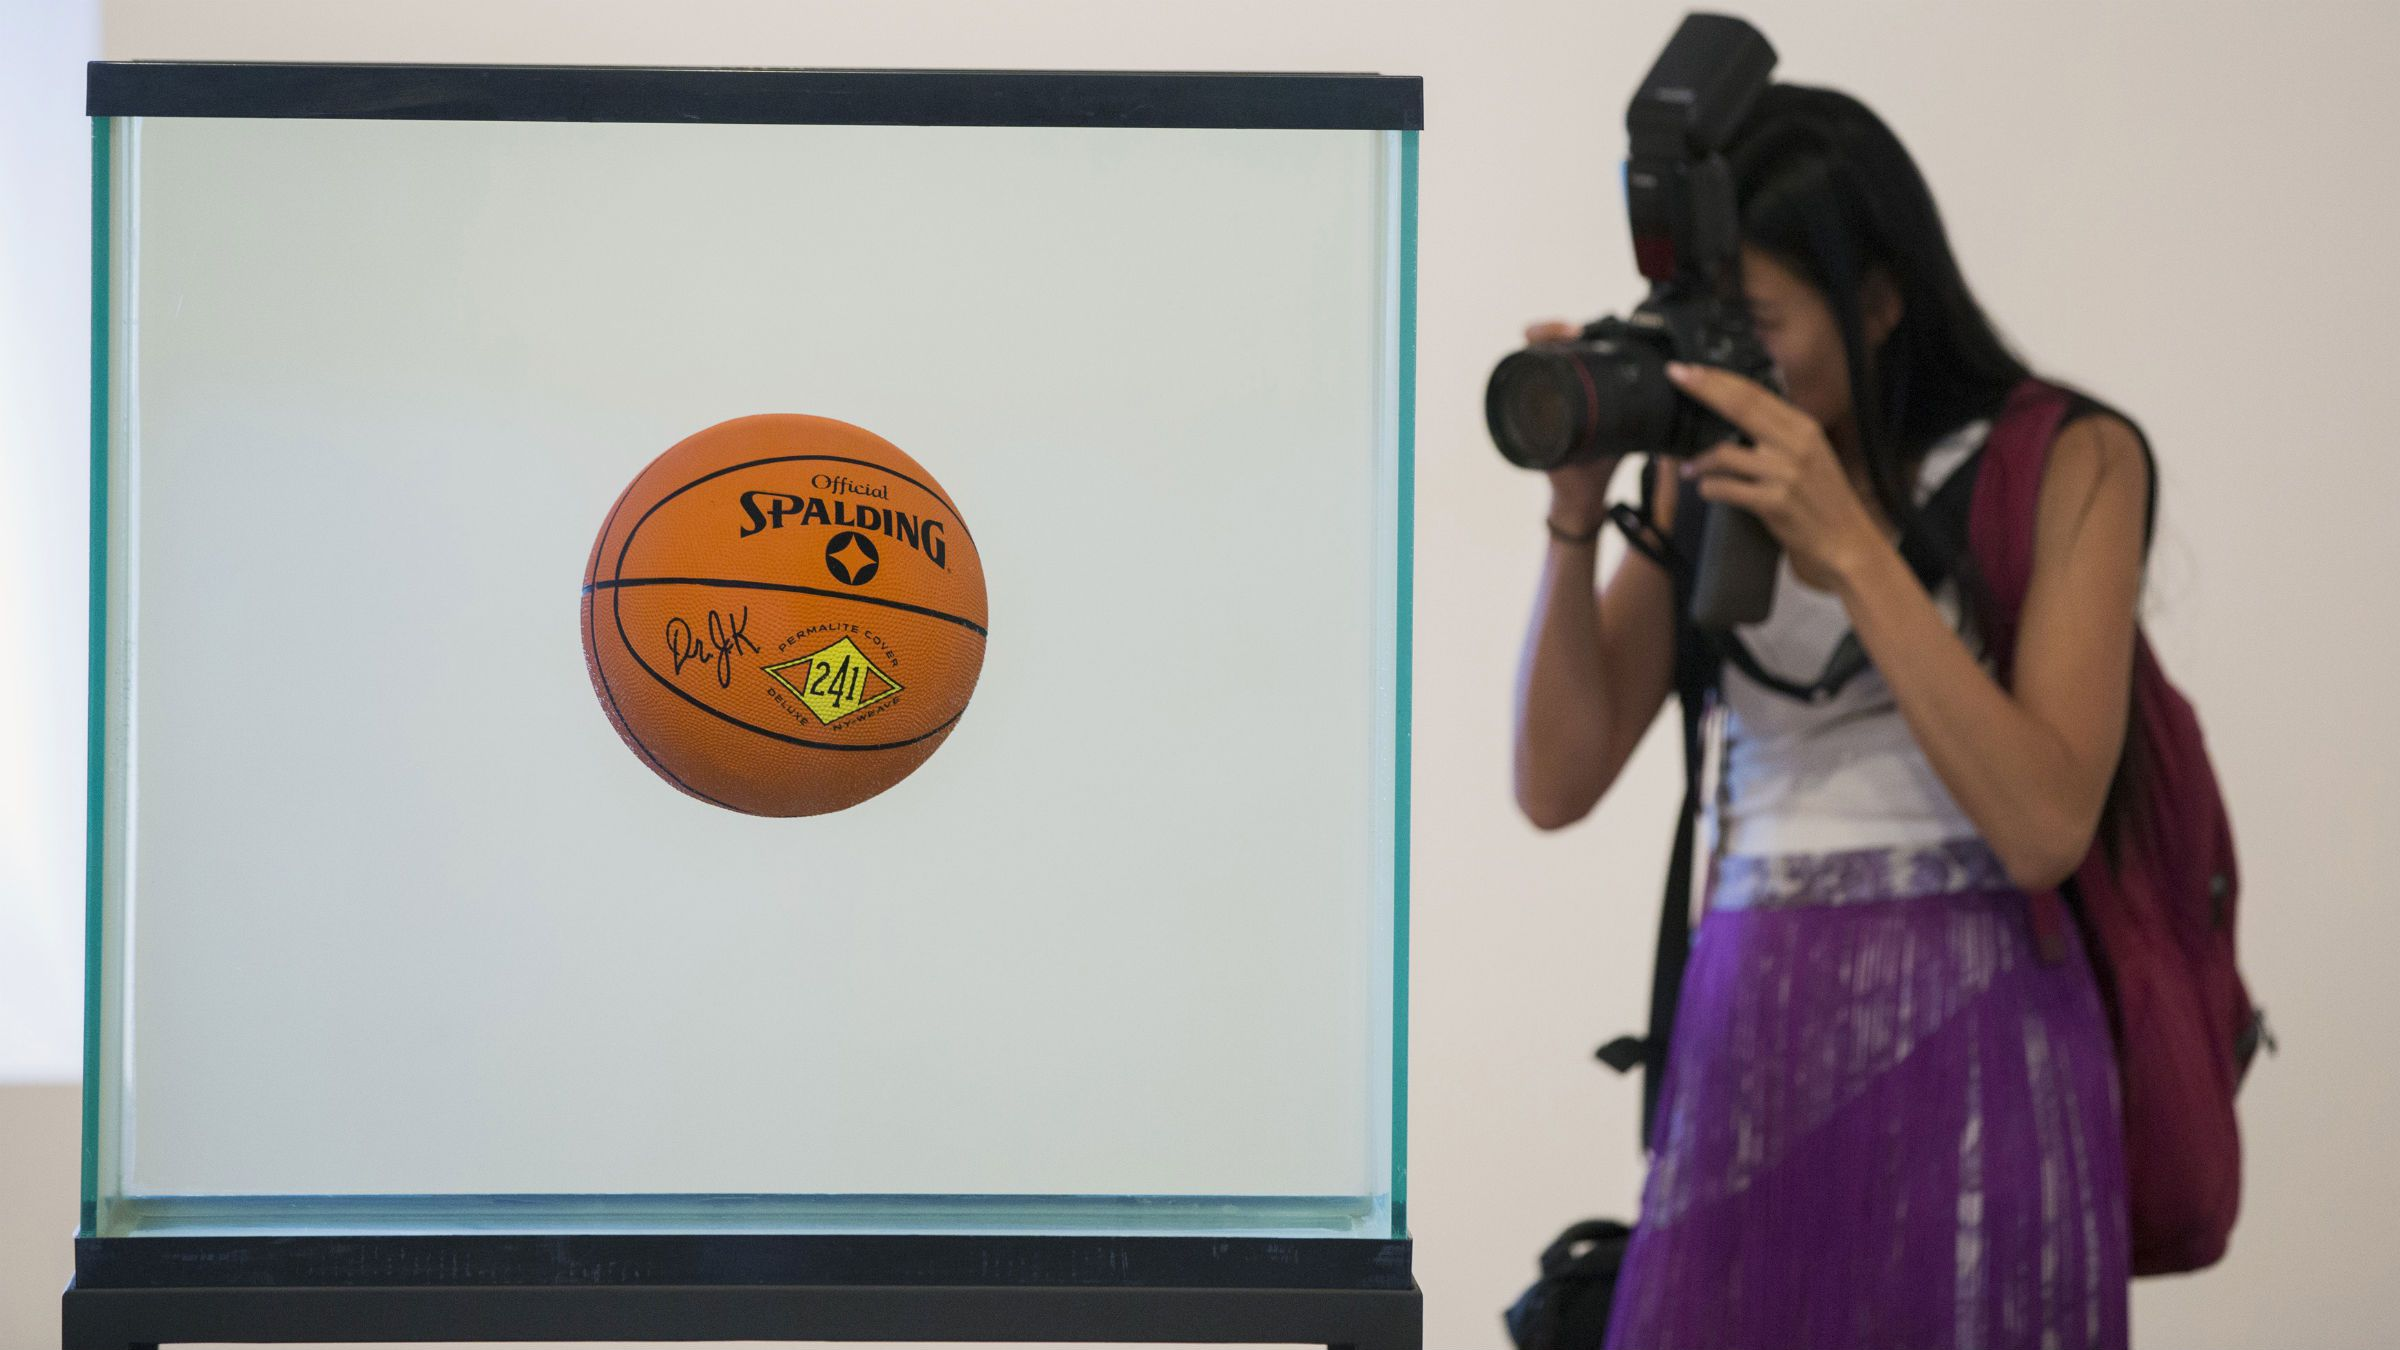 Jeff Koons Basketball sculpture